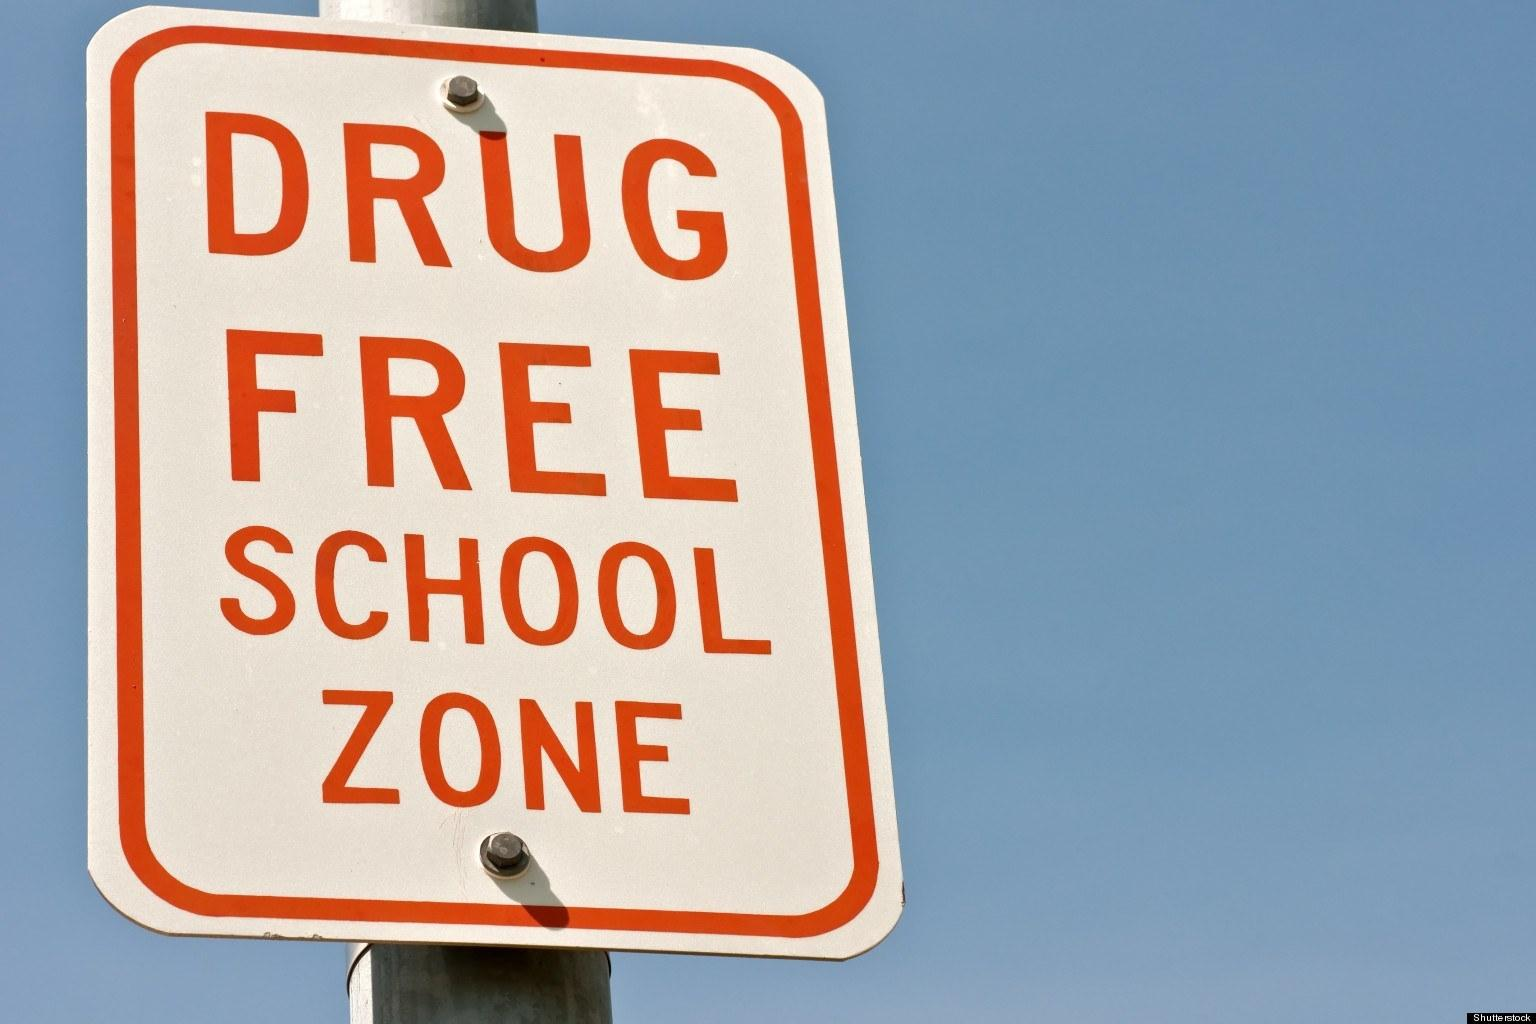 Image of a Drug Free School Zone sign